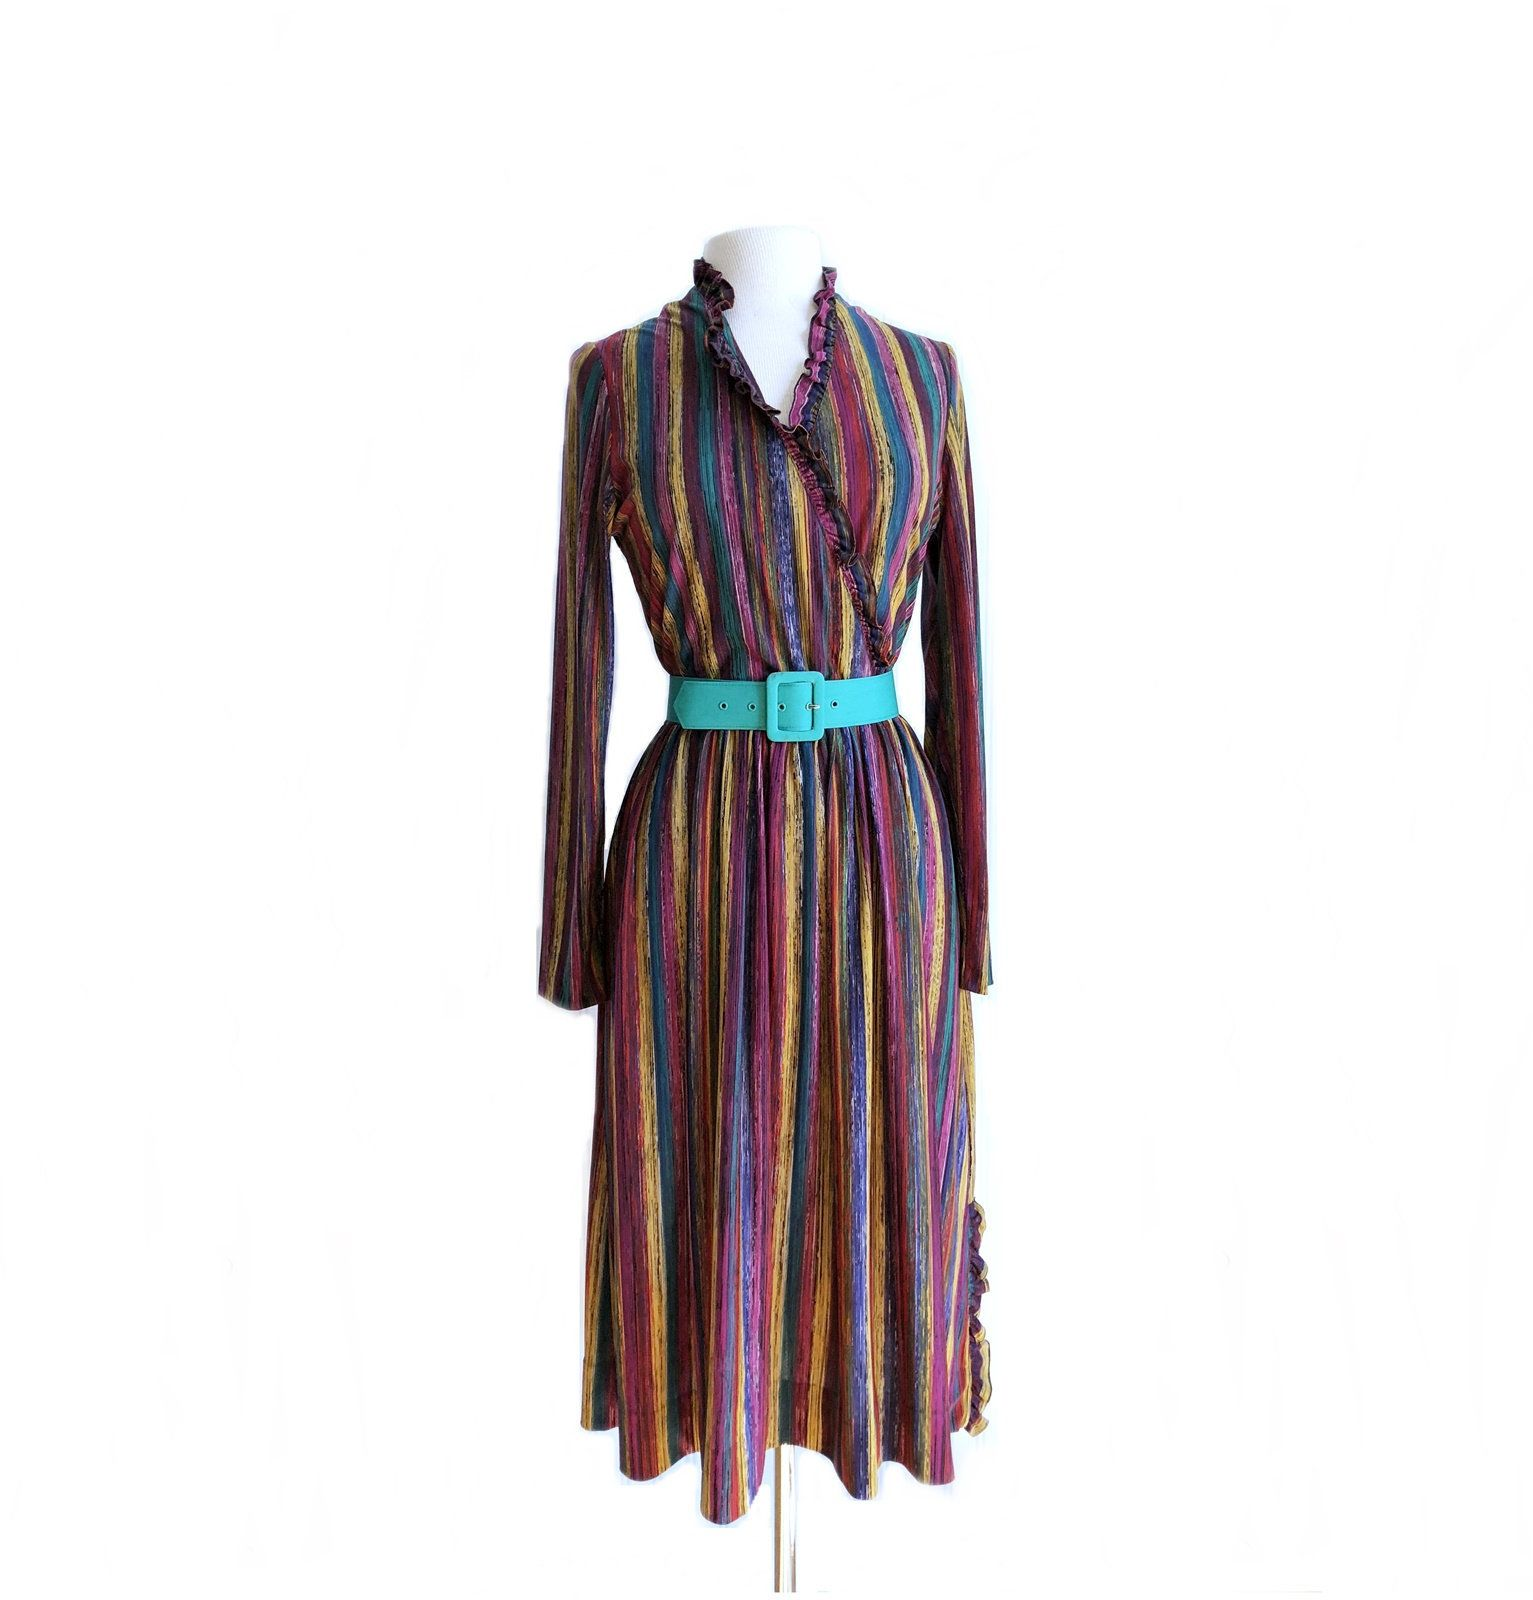 Vintage s psychedelic rainbow dress long sleeve multi color dress